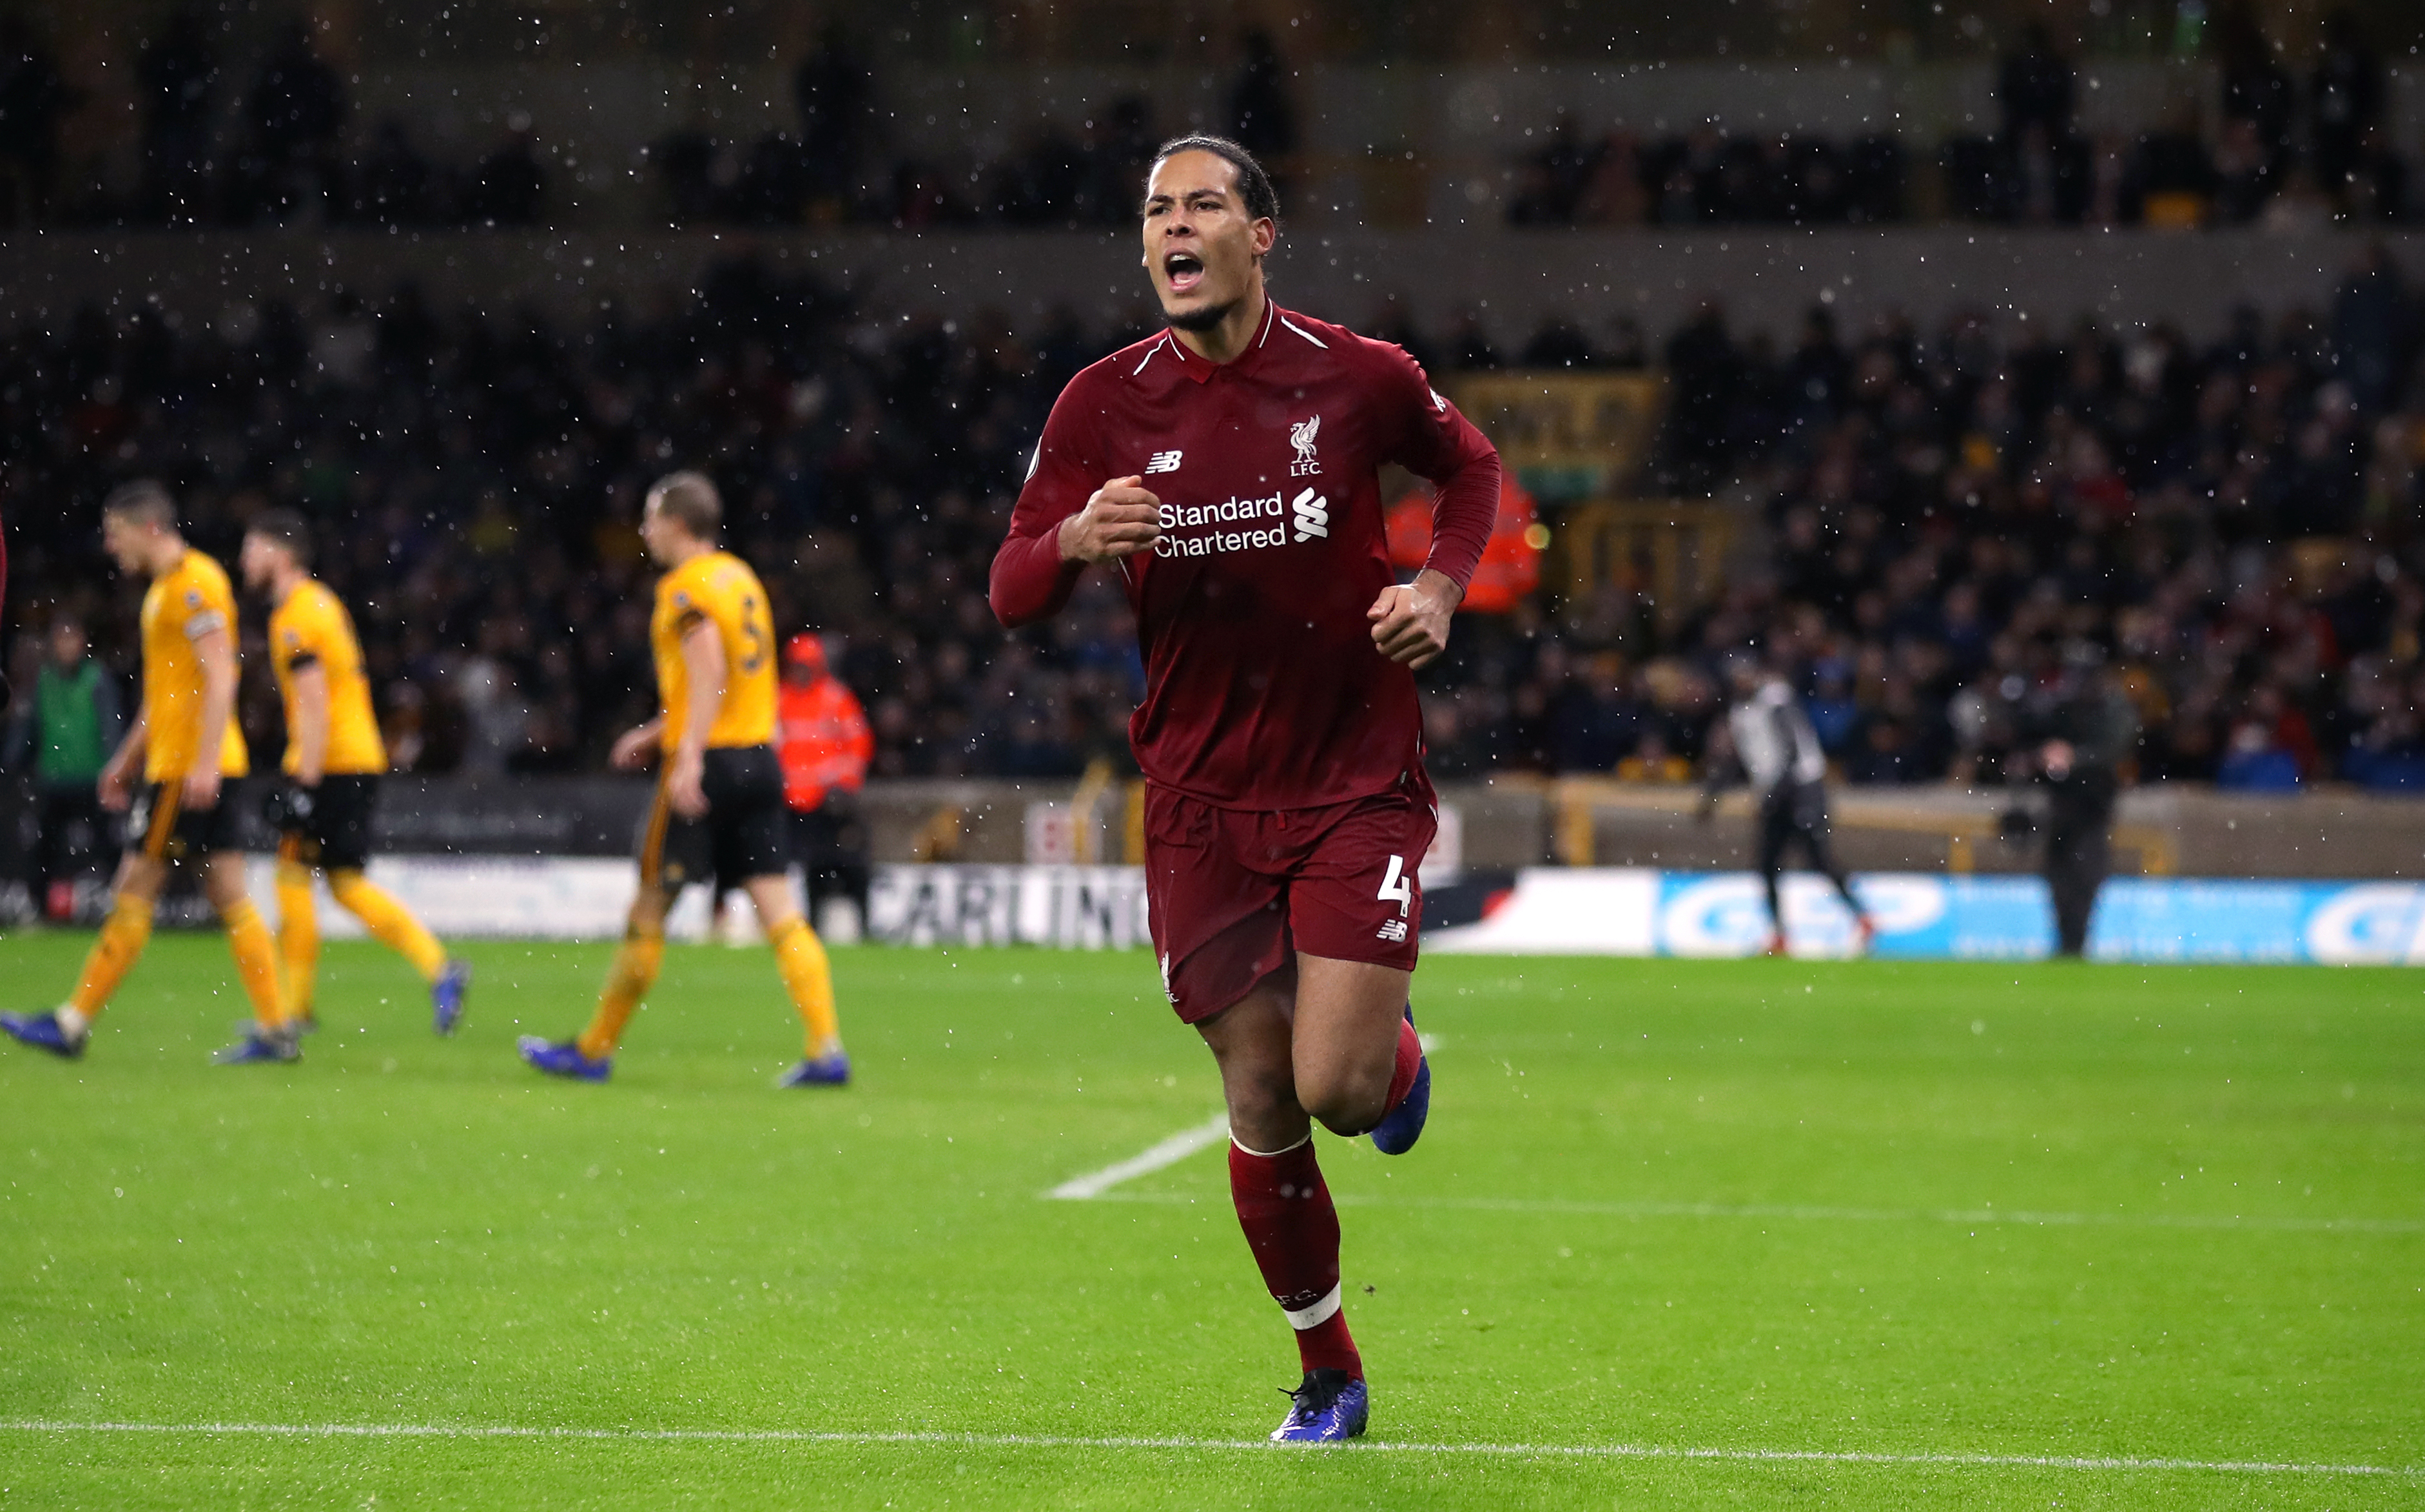 Van Dijk has been a tour de force since joining the Reds. Image: PA Images